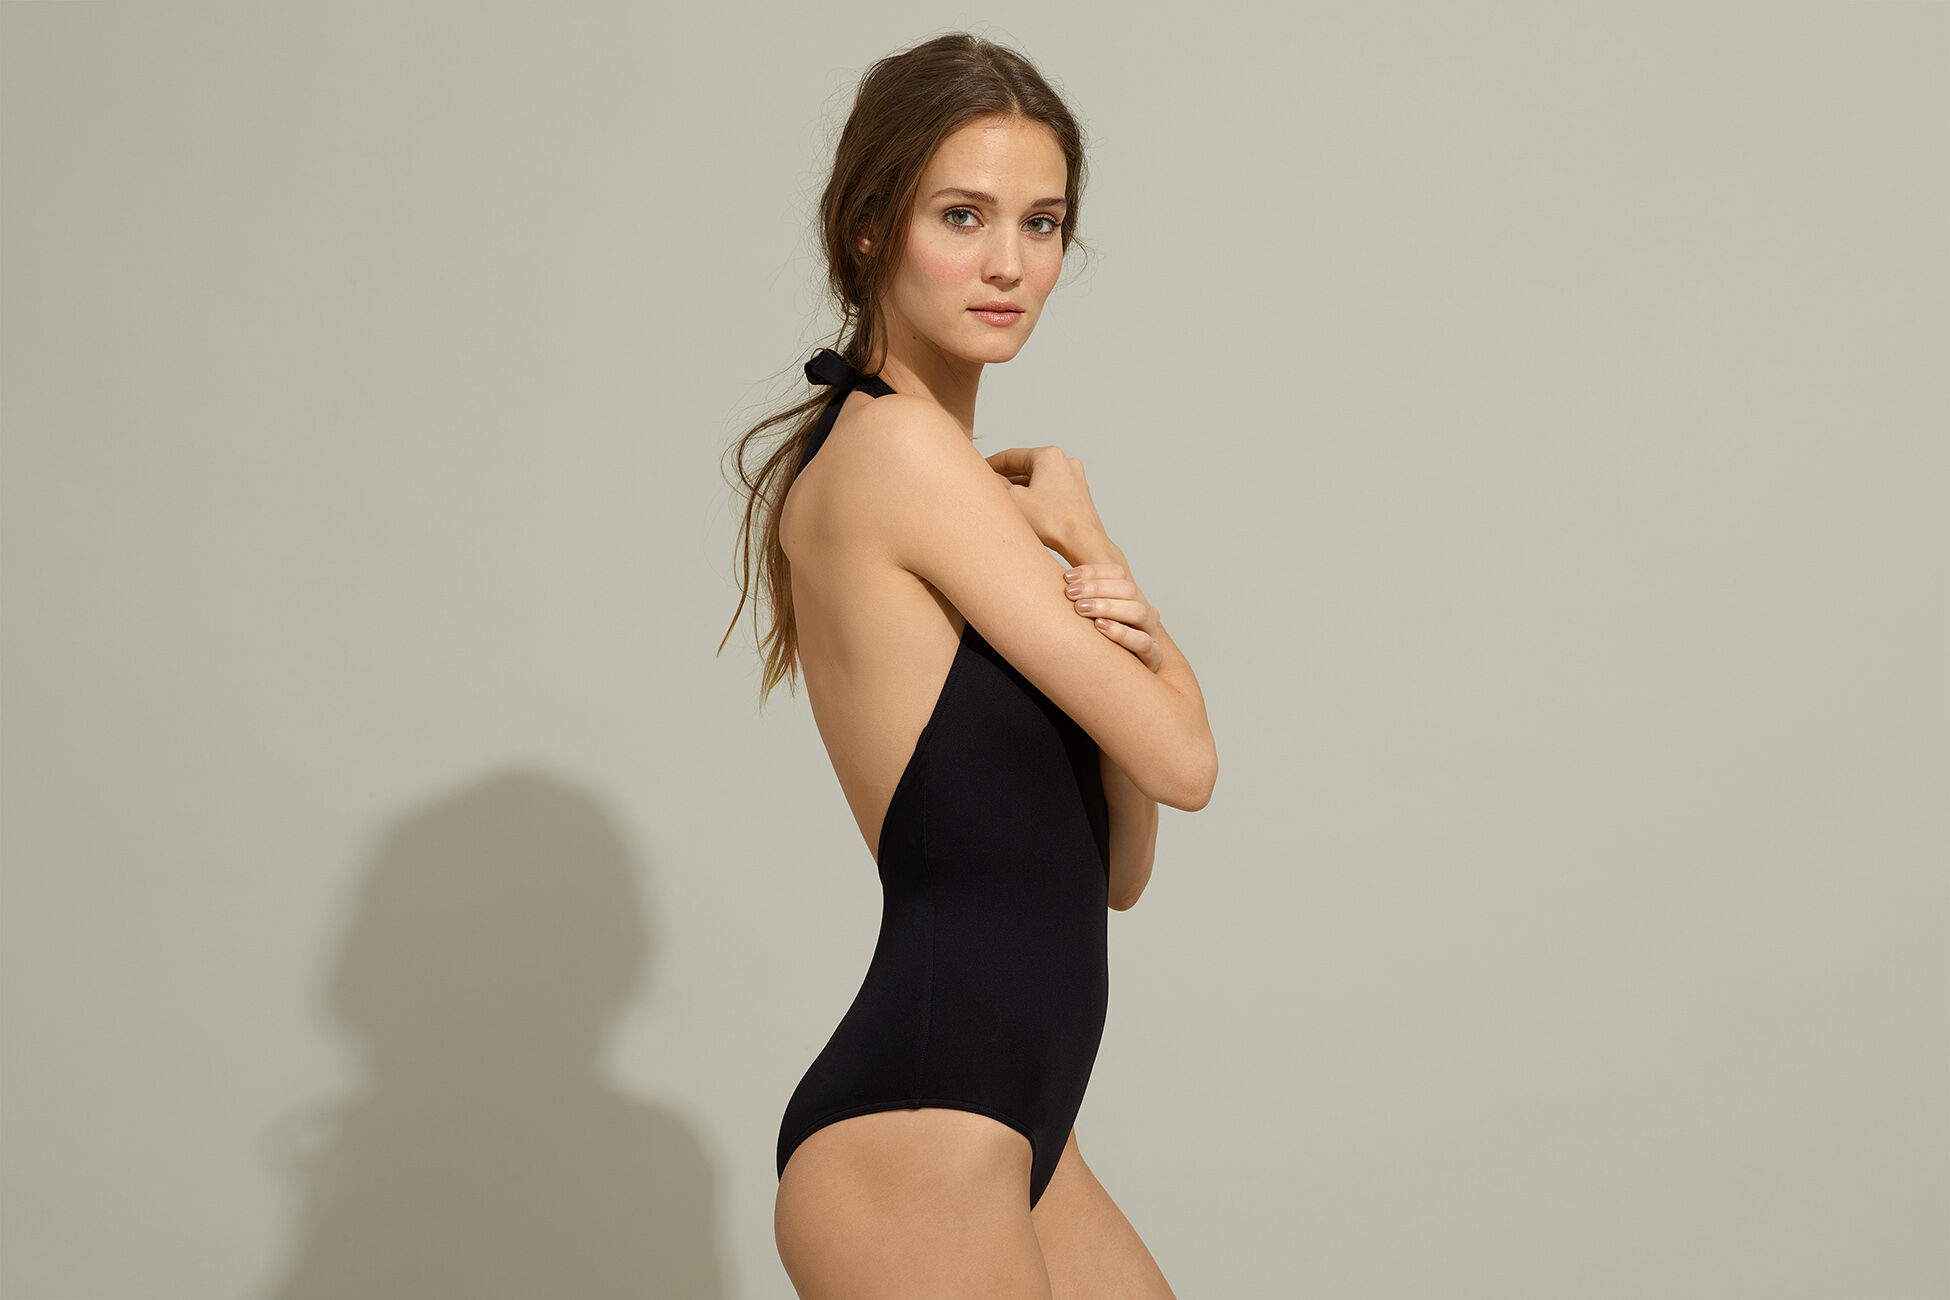 Cachette Sophisticated one-piece standard view �